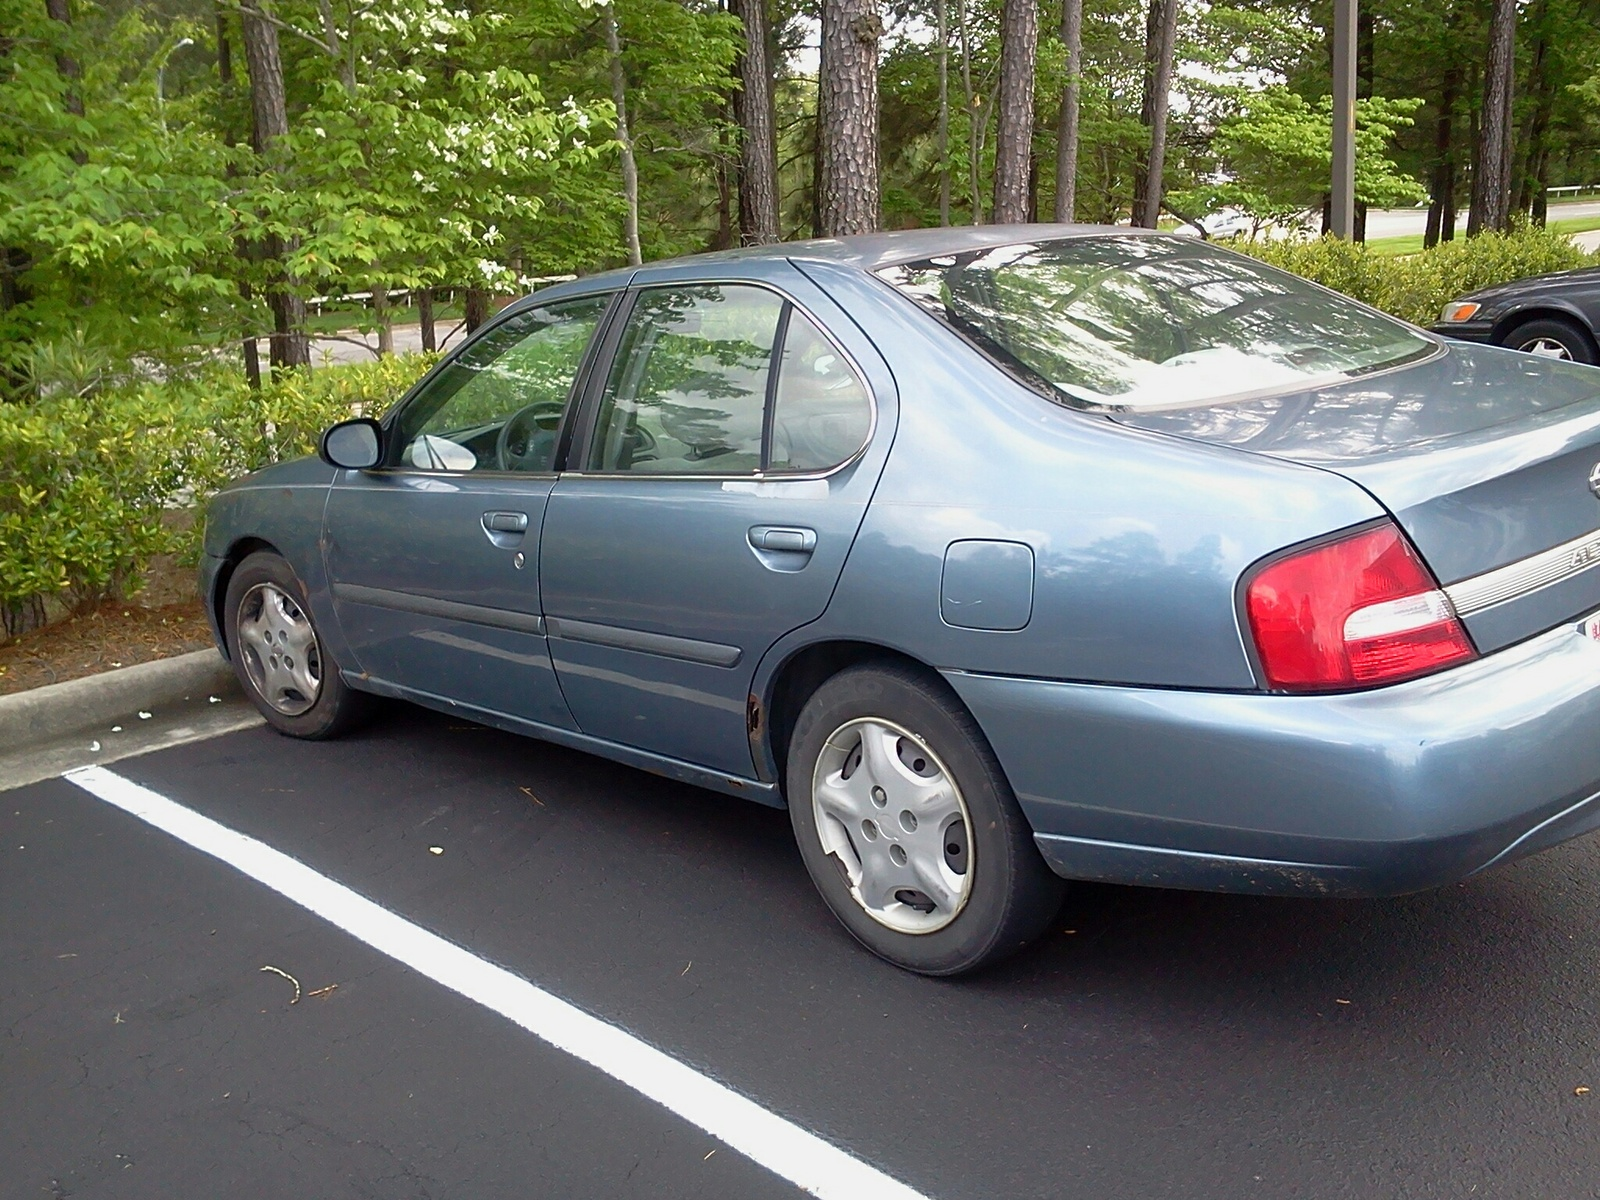 2000 Nissan altima gxe specifications #5